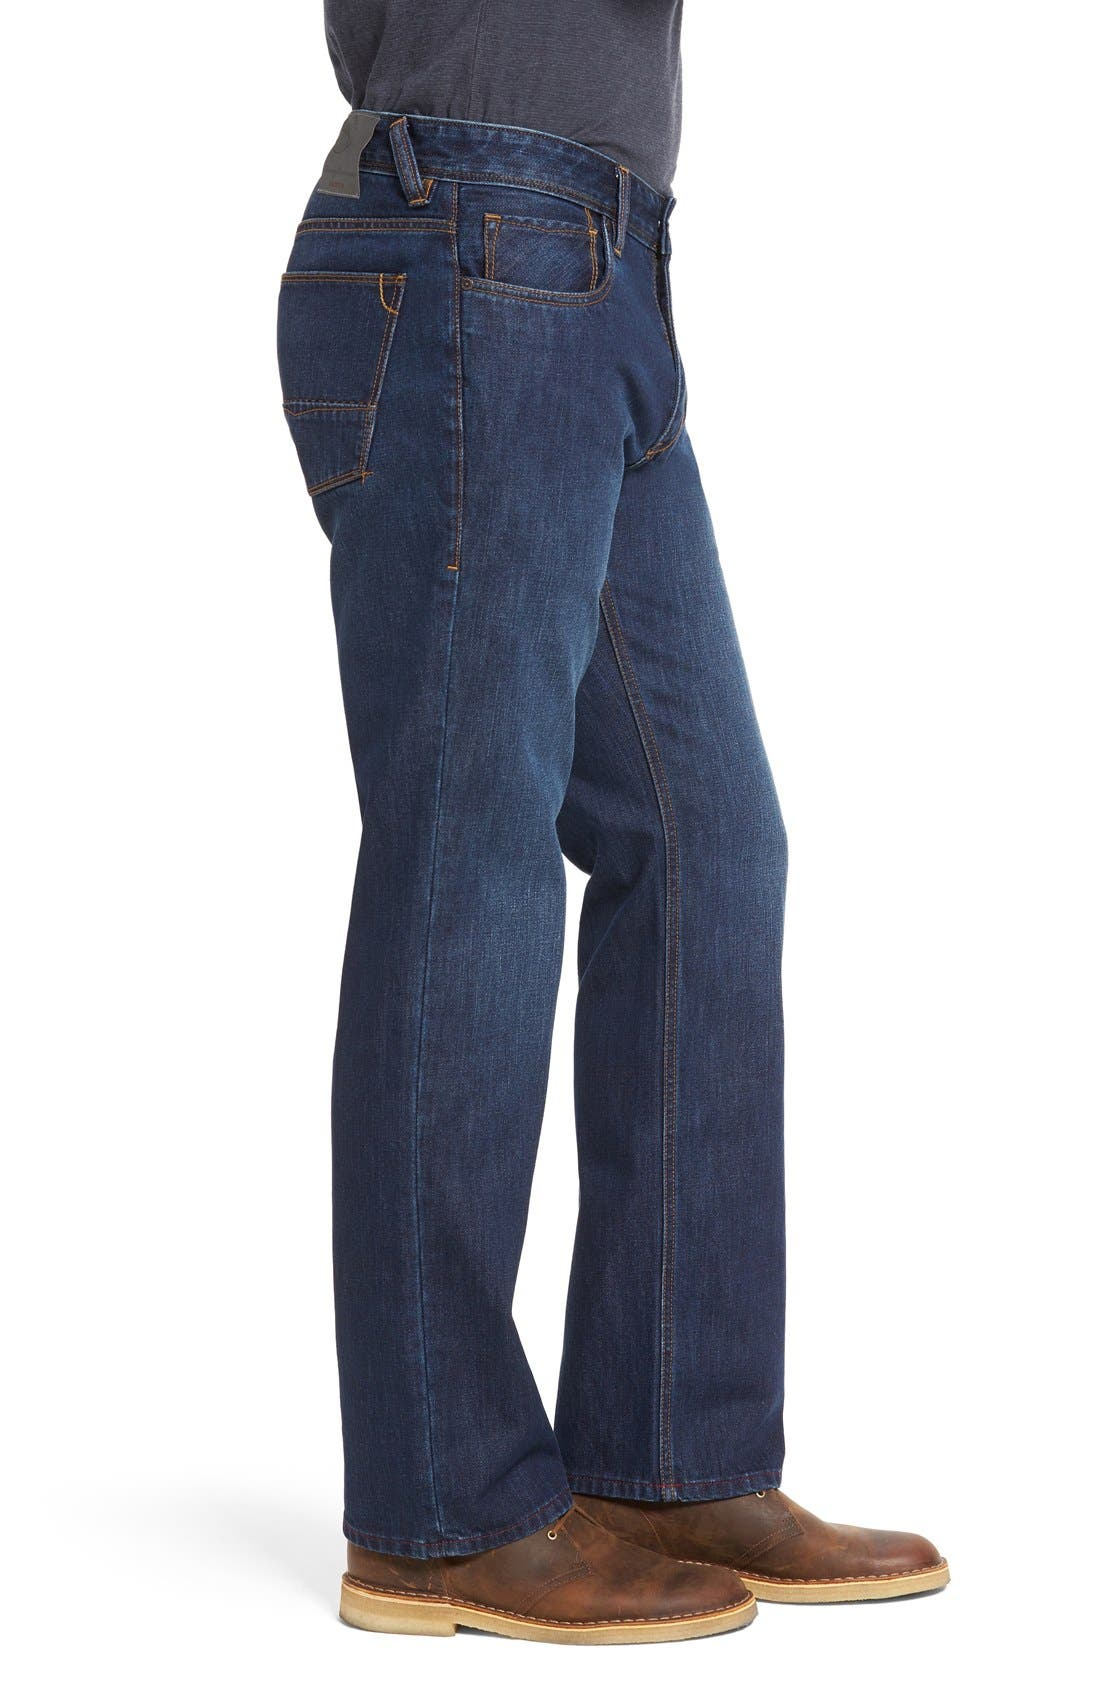 'Santorini' Relaxed Fit Jeans,                             Alternate thumbnail 5, color,                             DARK INDIGO WASH